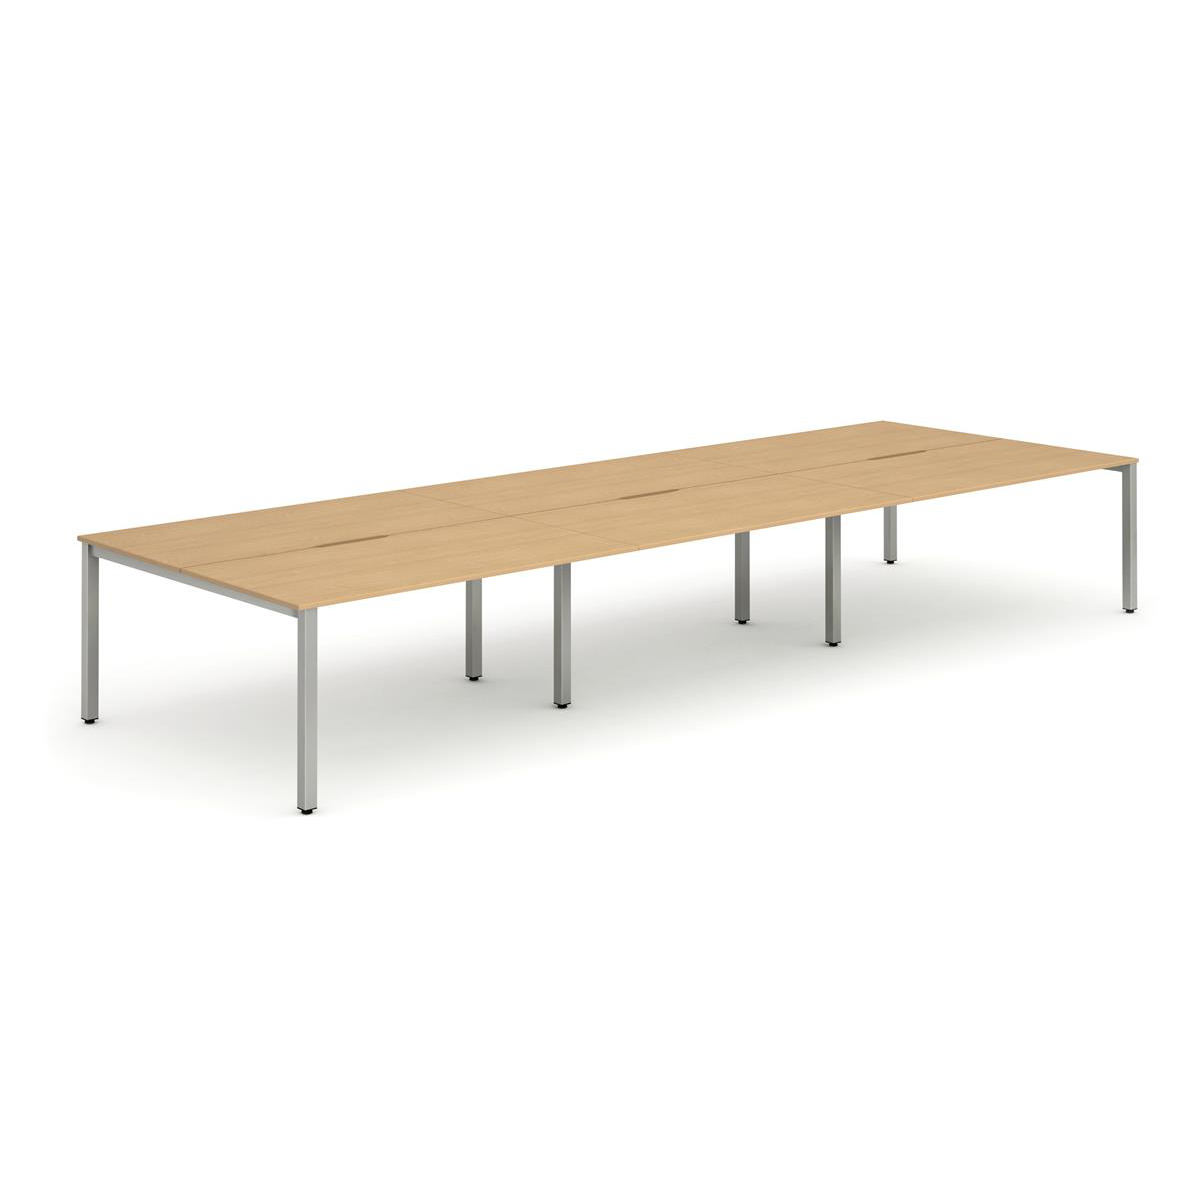 Trexus Bench Desk 6 Person Back to Back Configuration Silver Leg 4800x1600mm Beech Ref BE292